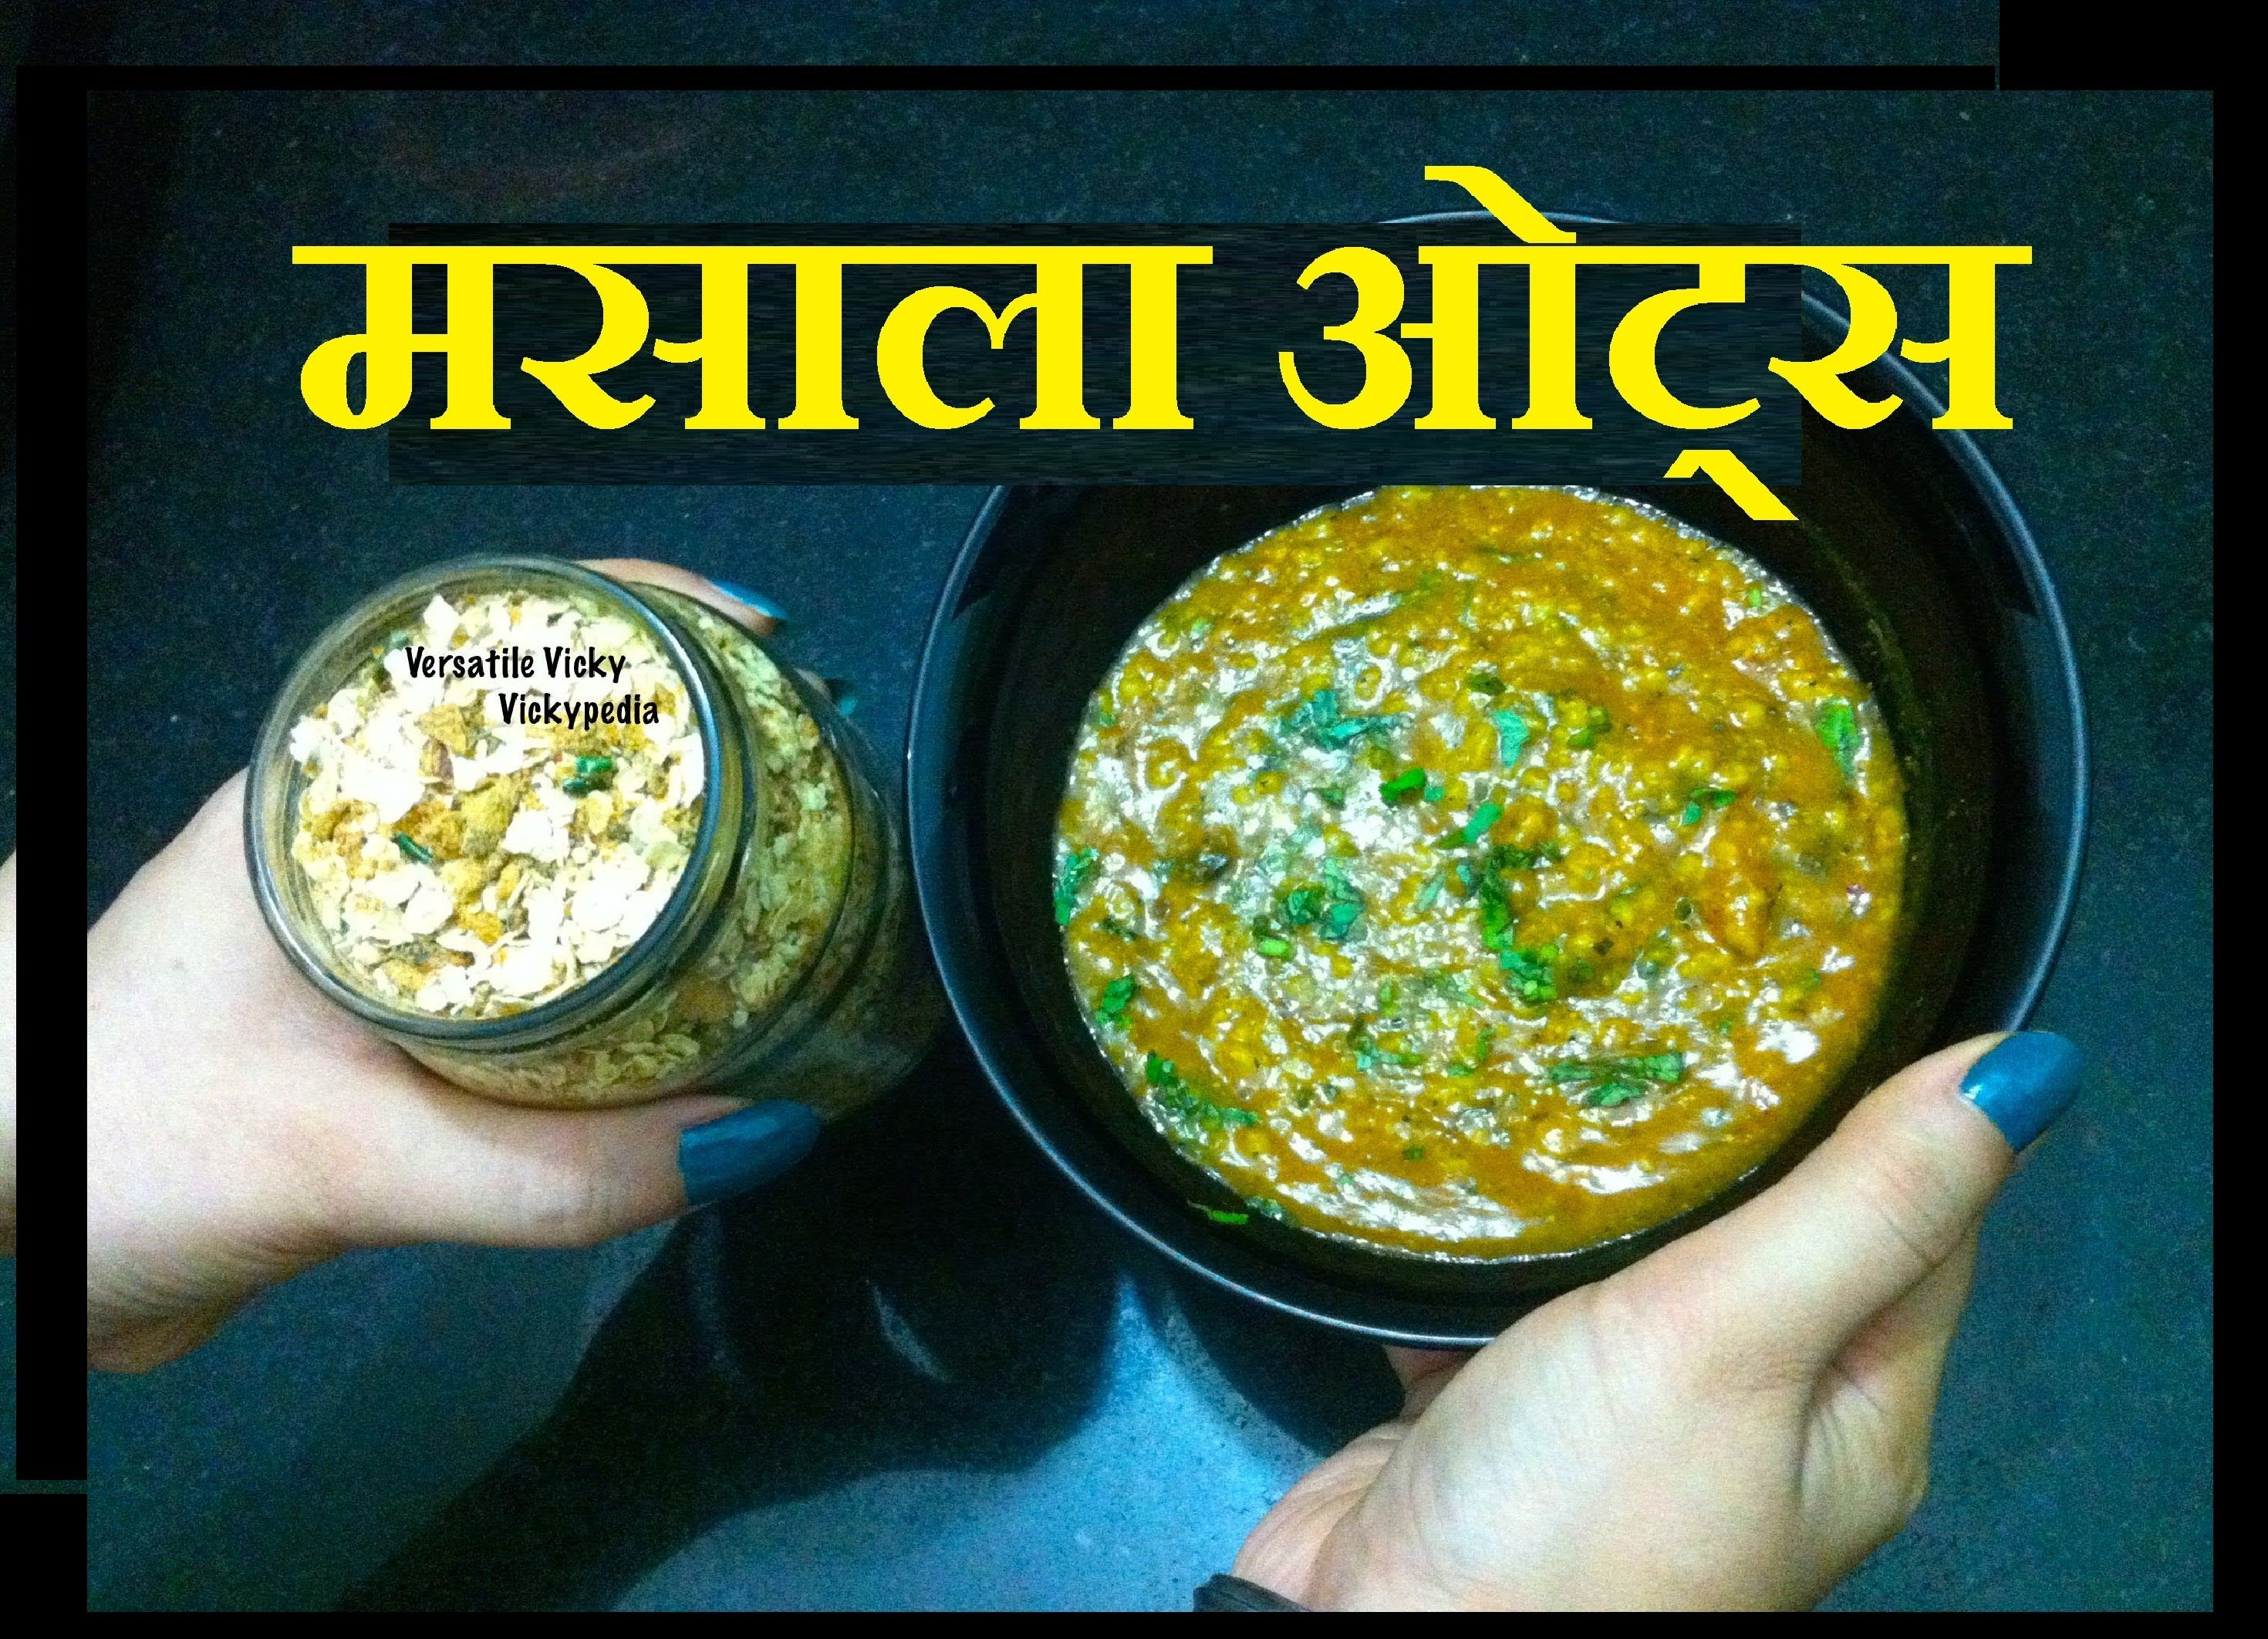 masala oats recipe in hindi how to make masala oats recipe in hindi how to make quaker masala oats savoury indian dietindian mealsavory forumfinder Images